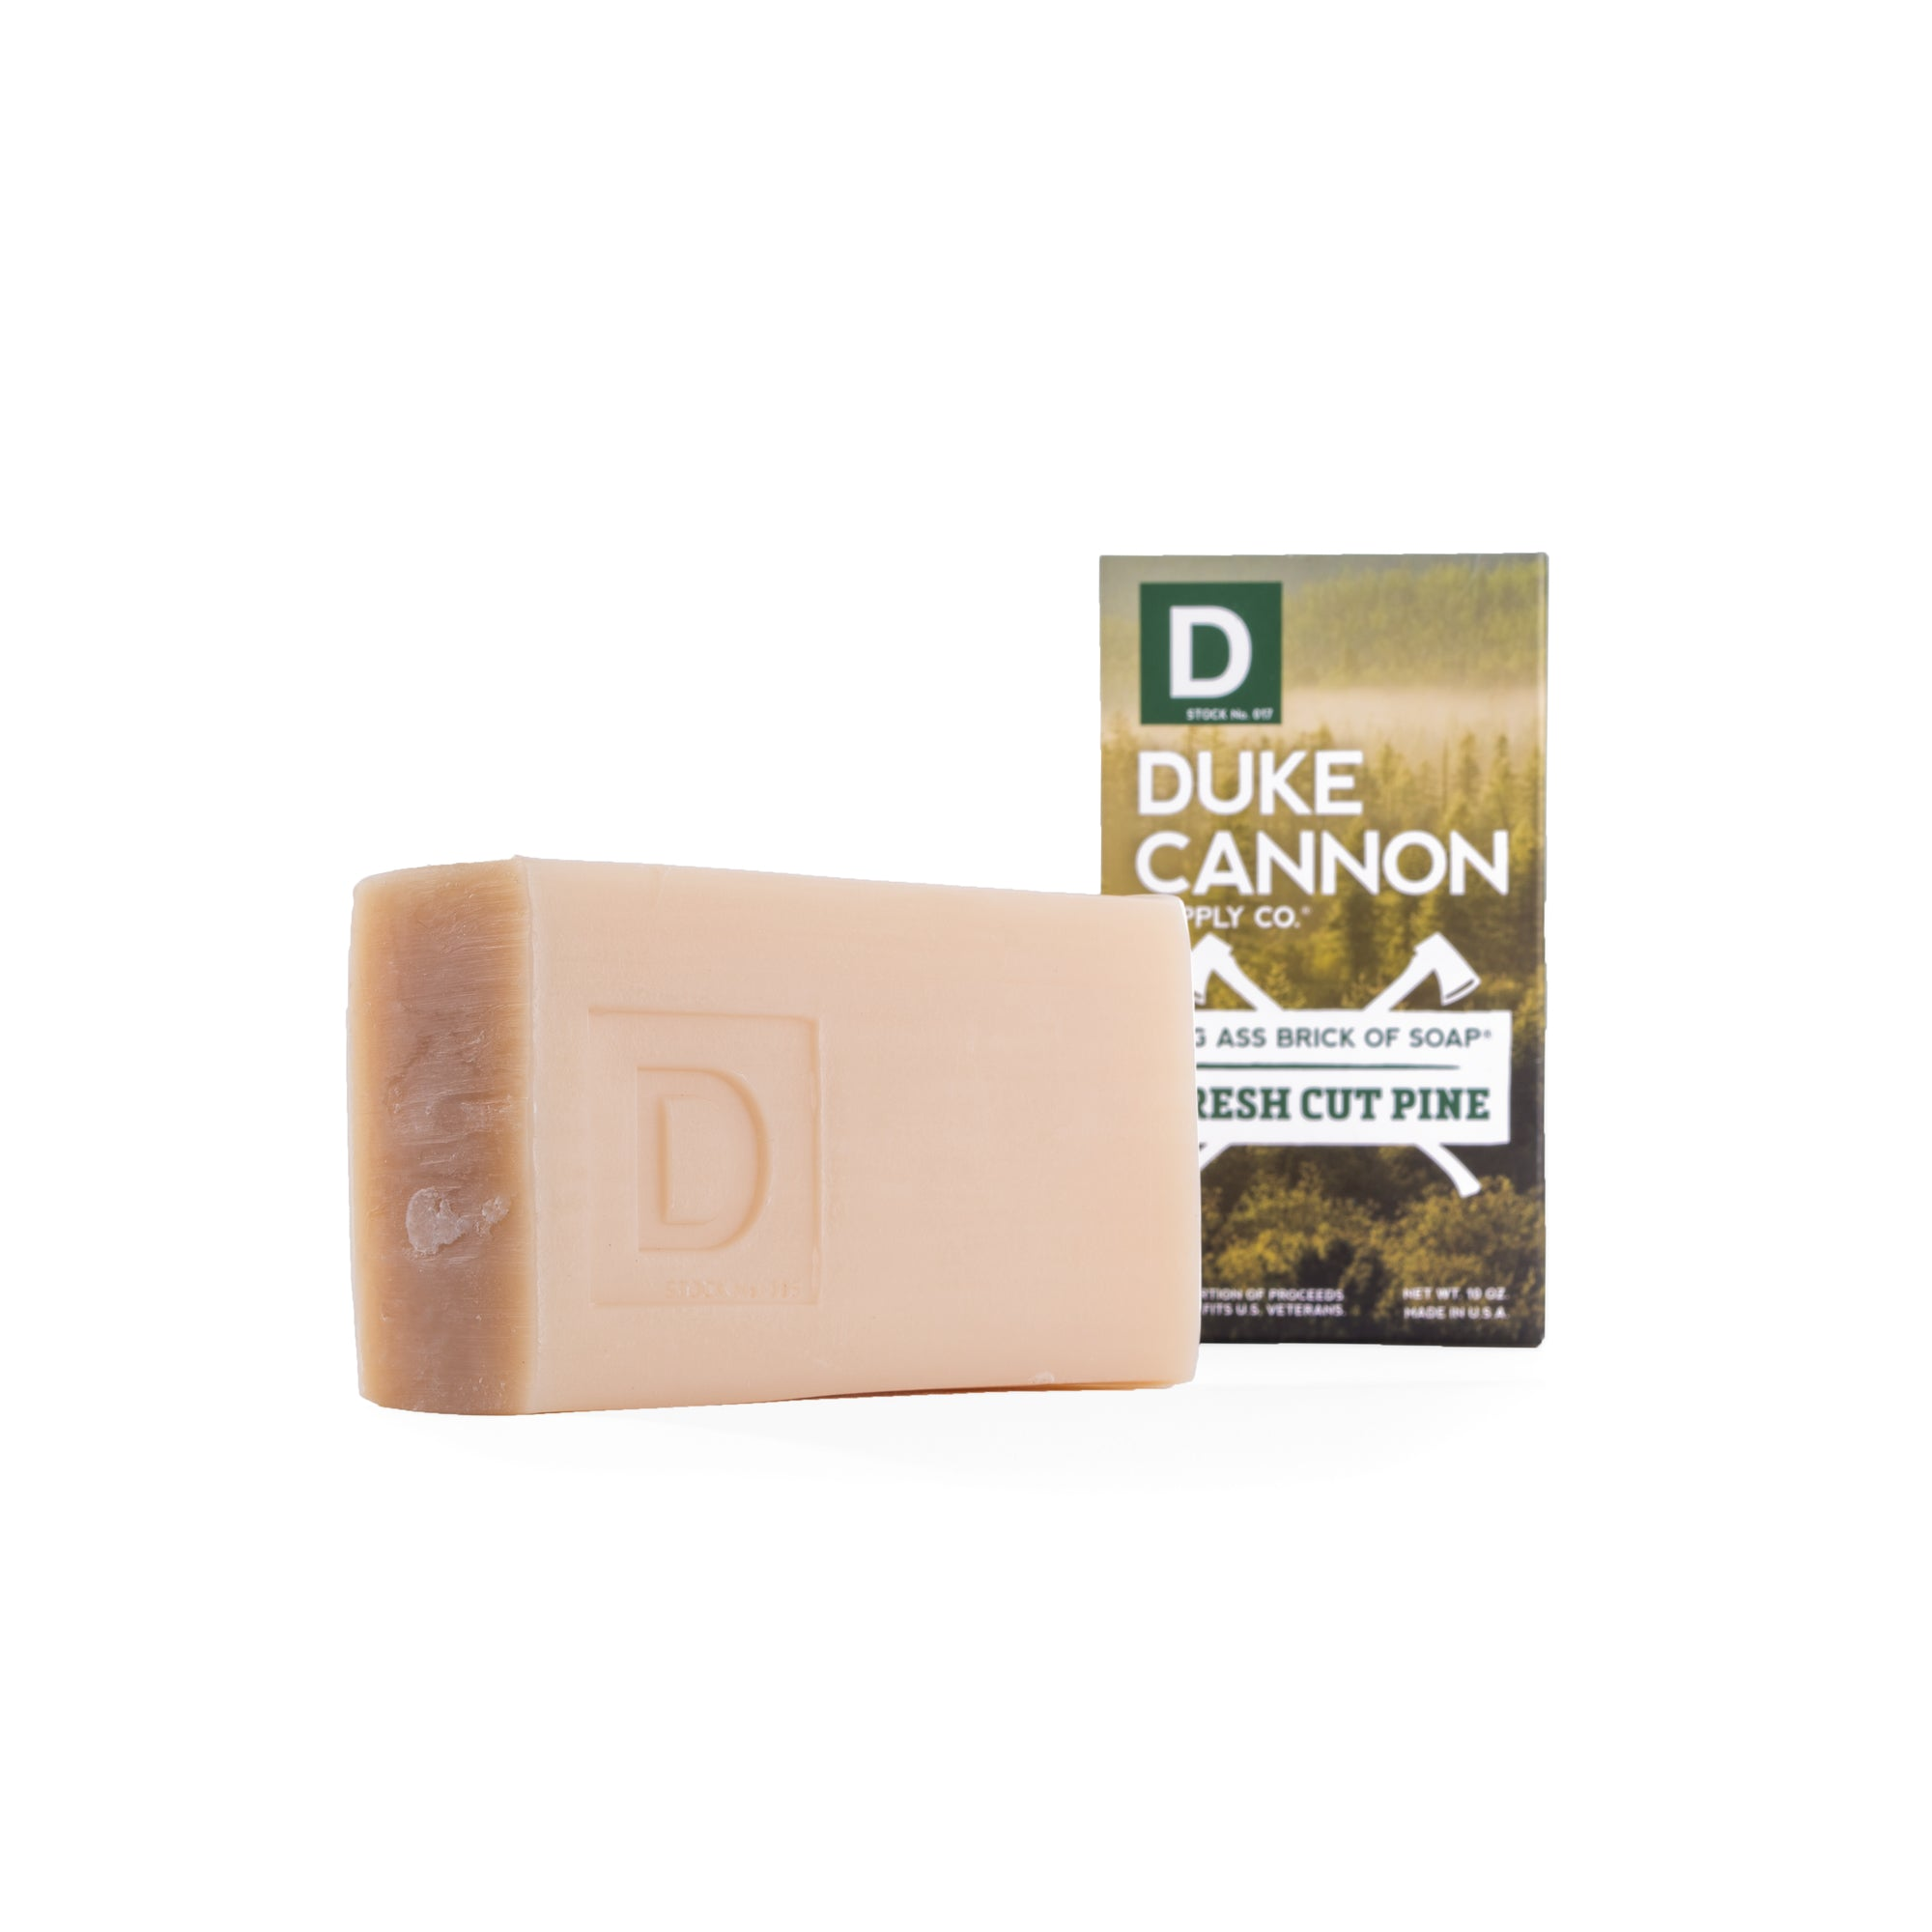 Big Ass Brick of Soap - Fresh Cut Pine - Duke Cannon